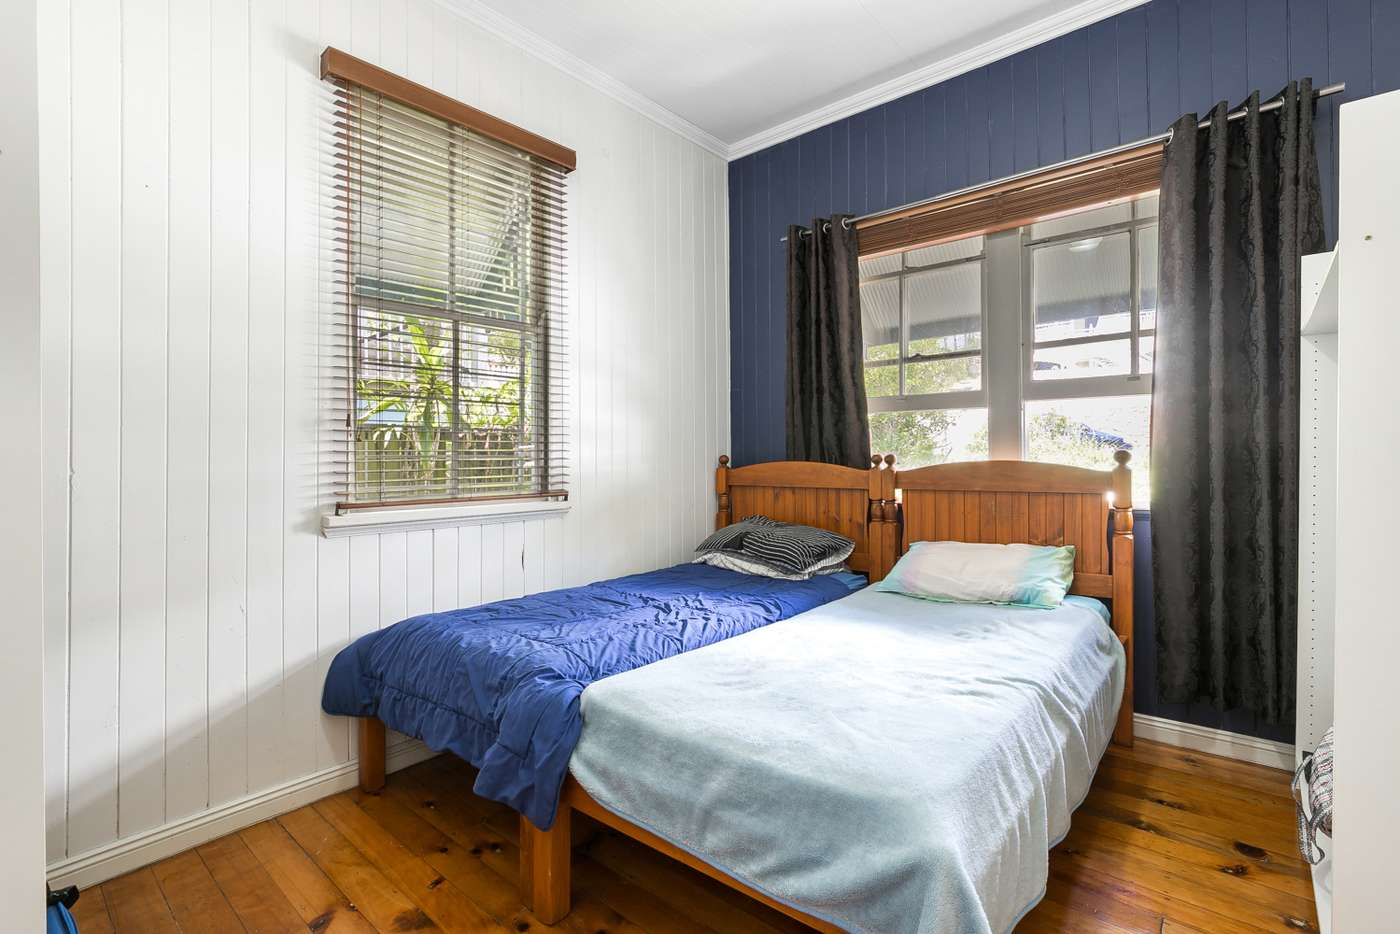 Sixth view of Homely house listing, 16 Eton Street, Toowong QLD 4066